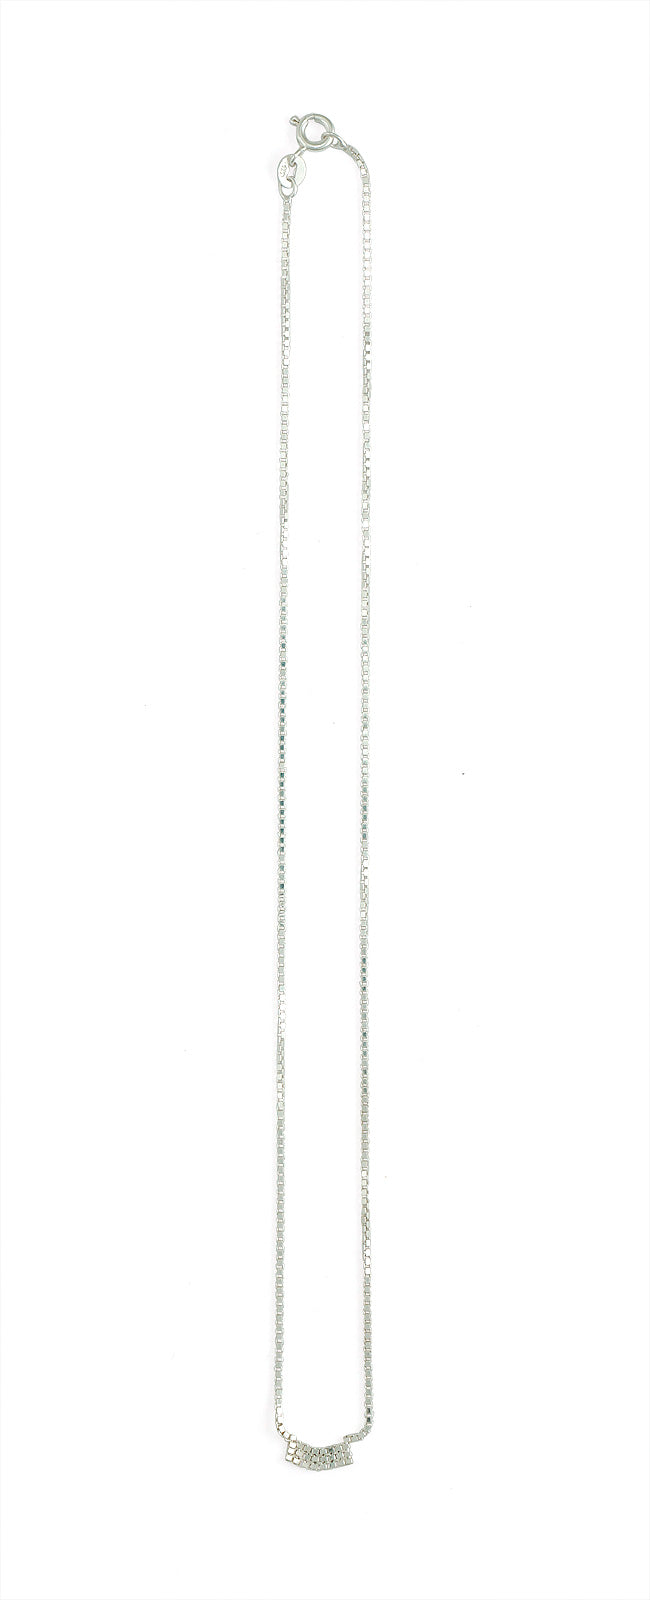 Martine Viergever - Necklace - Fringe 1 - silver